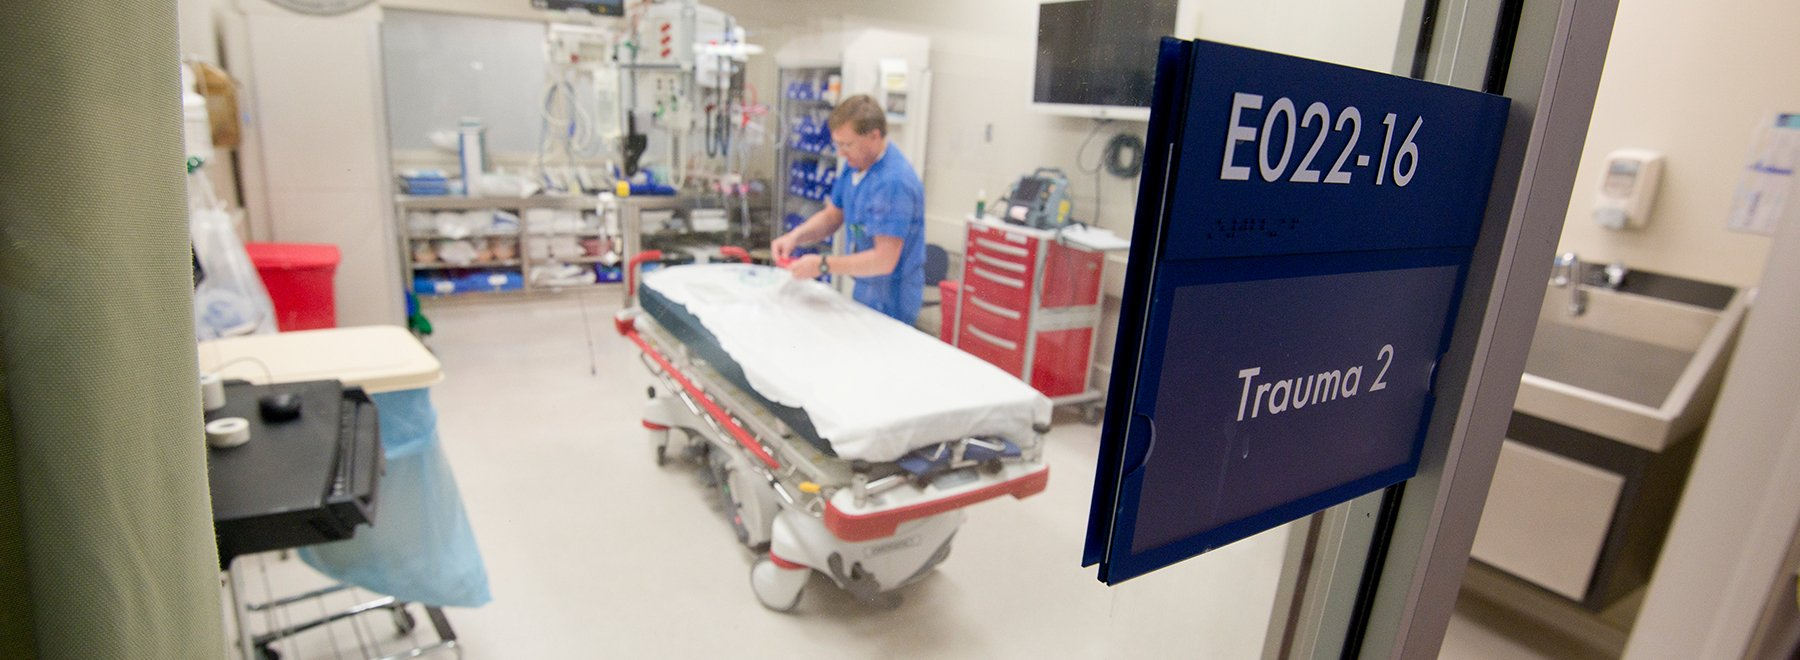 Male staff member readying a hospital bed in an empty trauma room